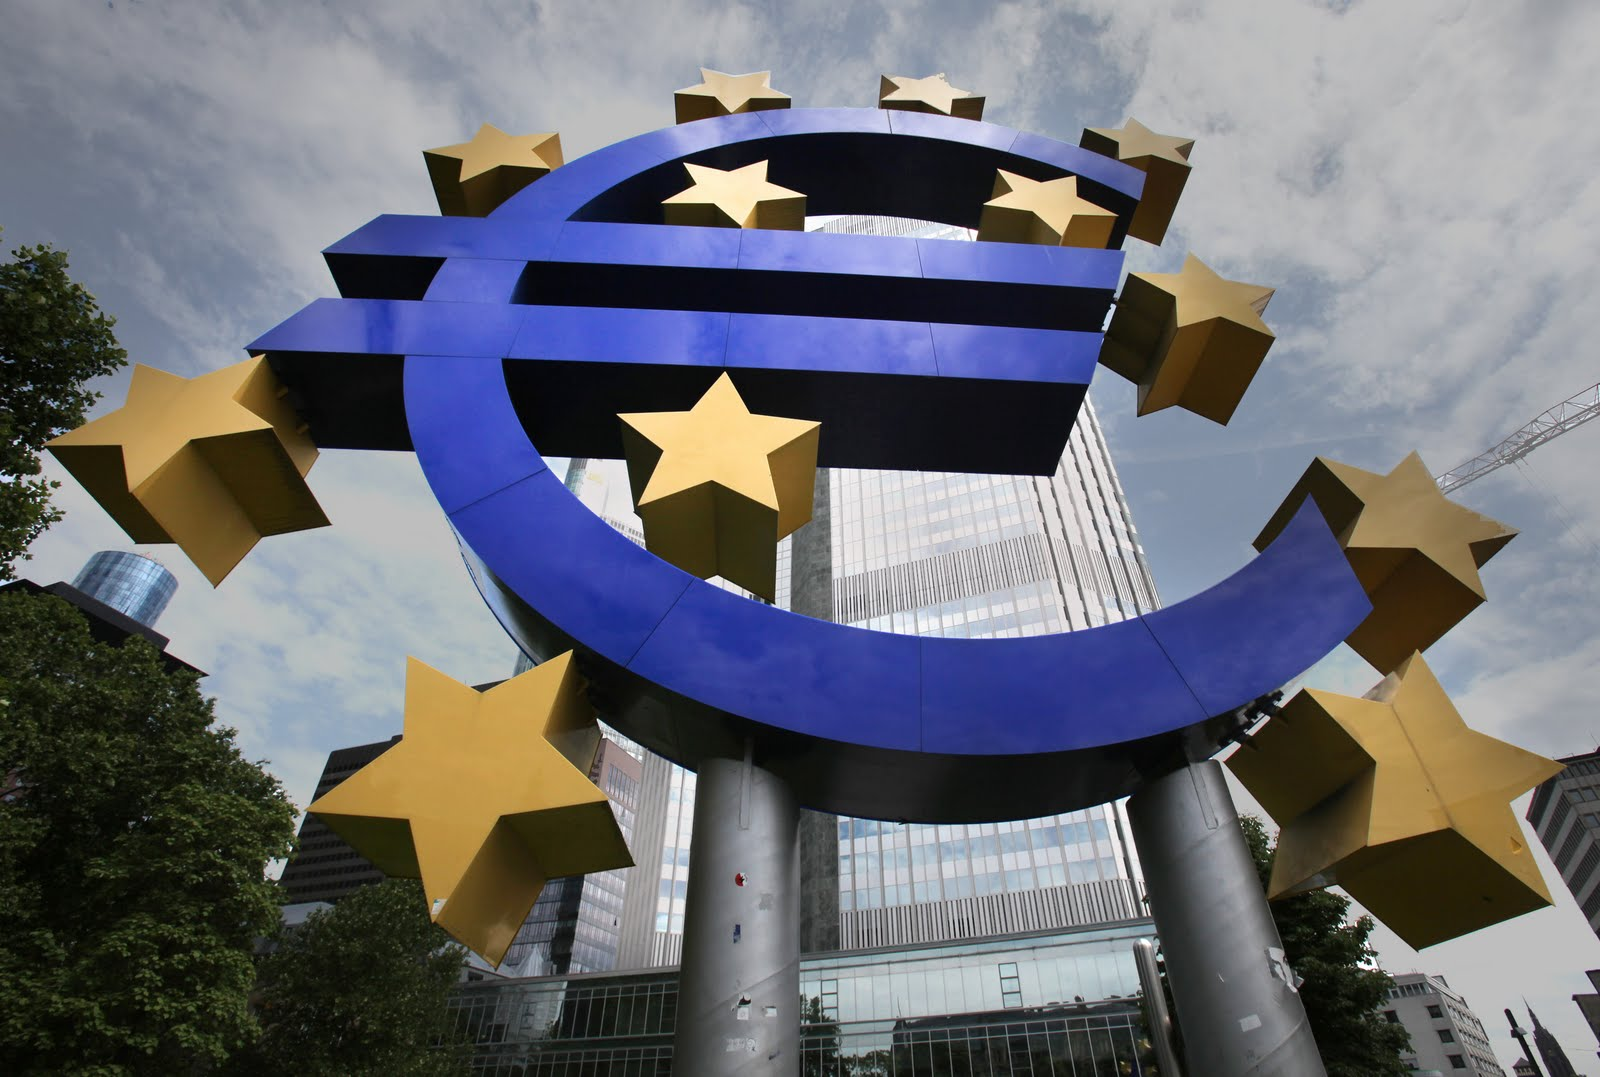 The Establishment of European Banking Union in the Euro Area Will Limit Losses in the Banking Sector